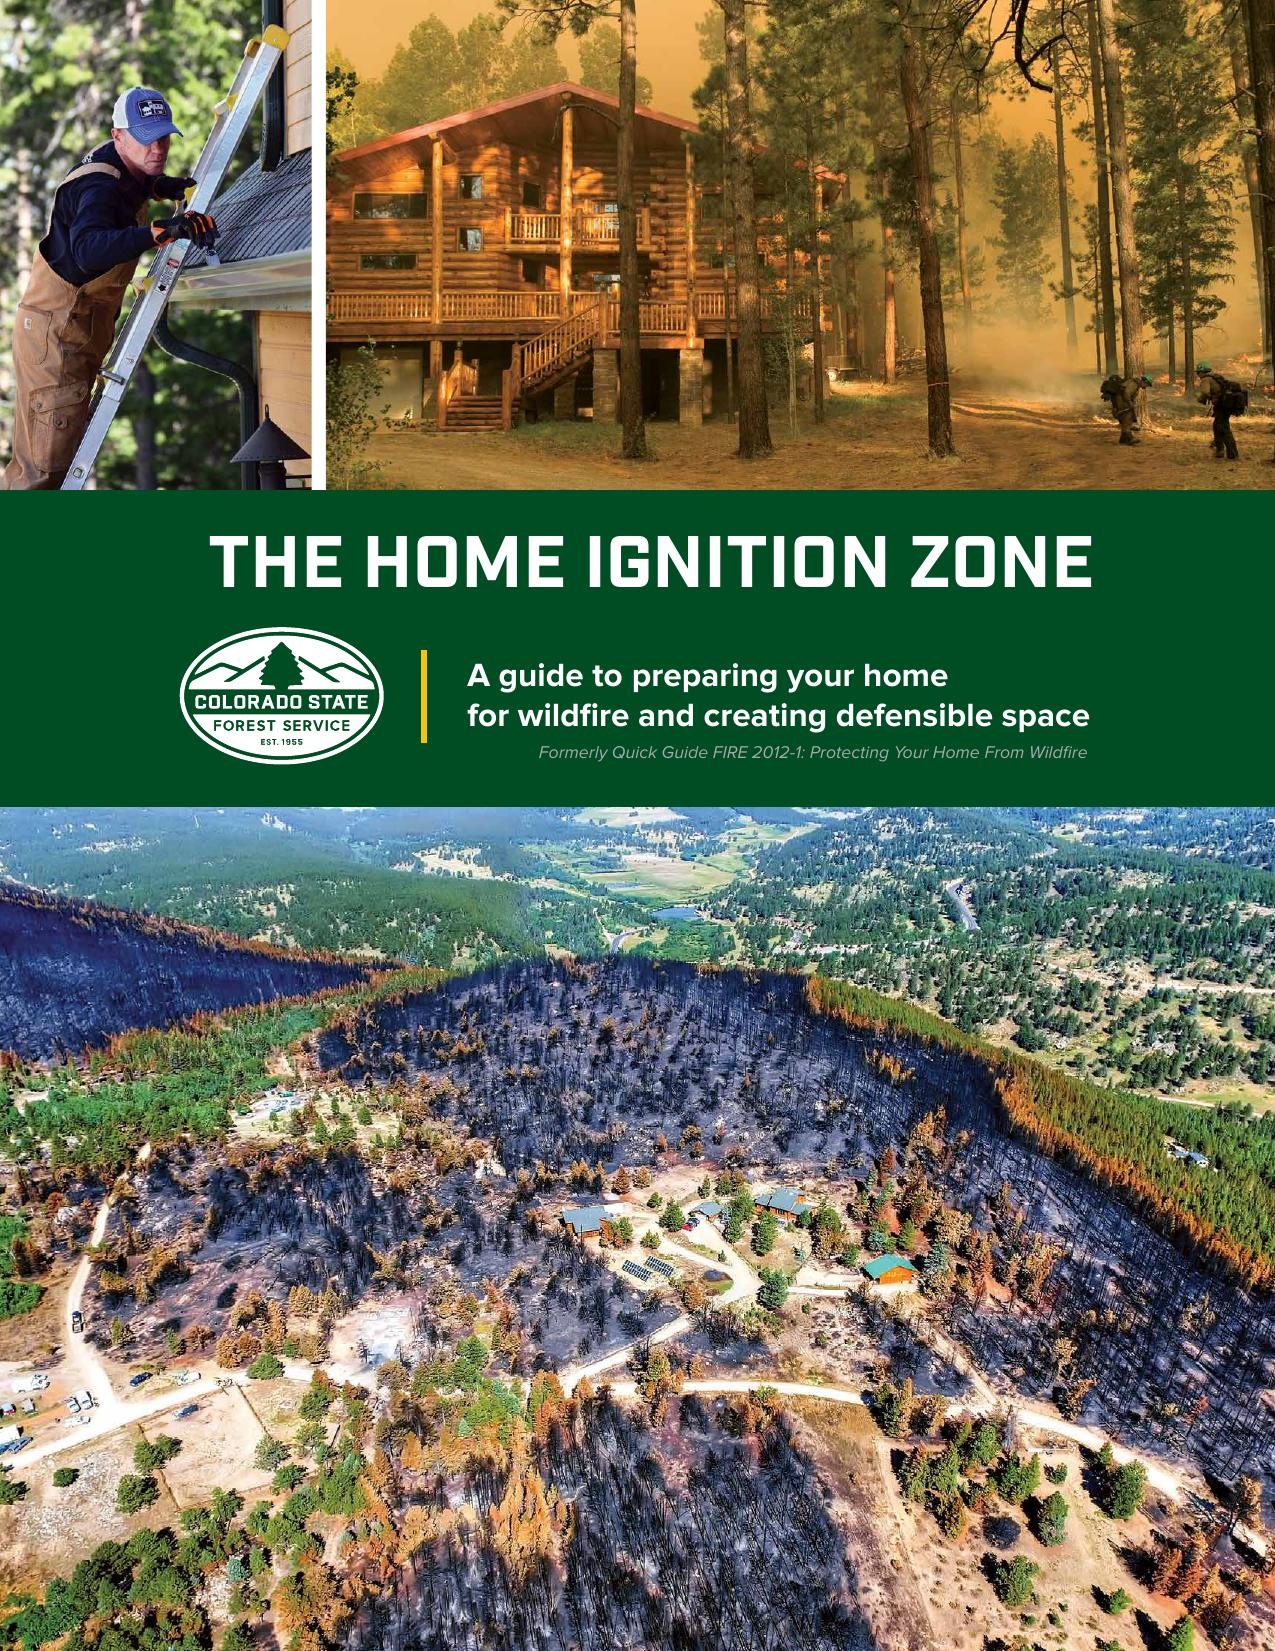 The Home Ignition Zone - A guide to preparing your home for wildfire and creating defensible space